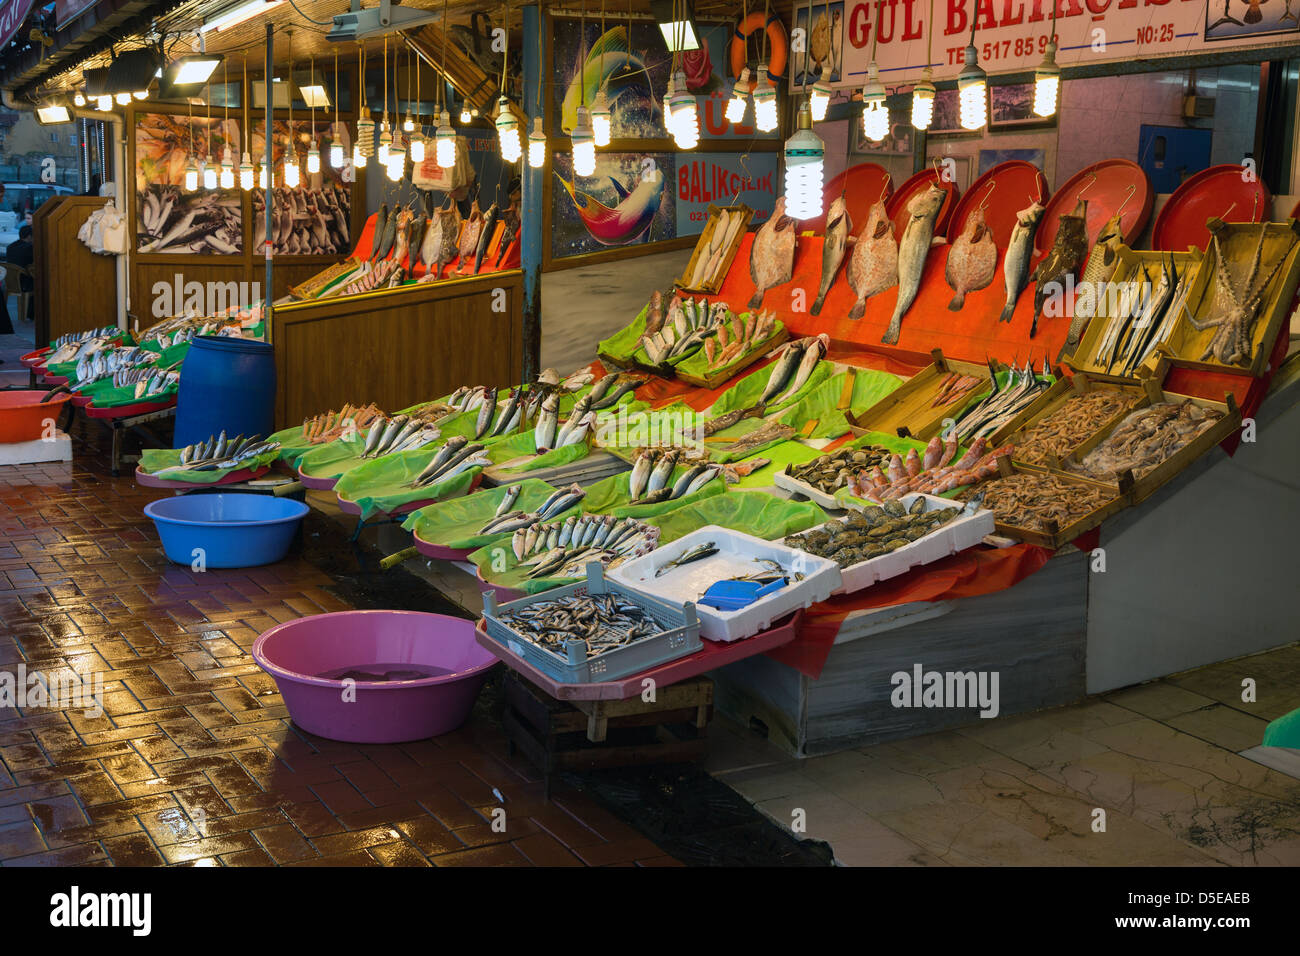 Fish for sale at fish market, Istanbul, Turkey - Stock Image